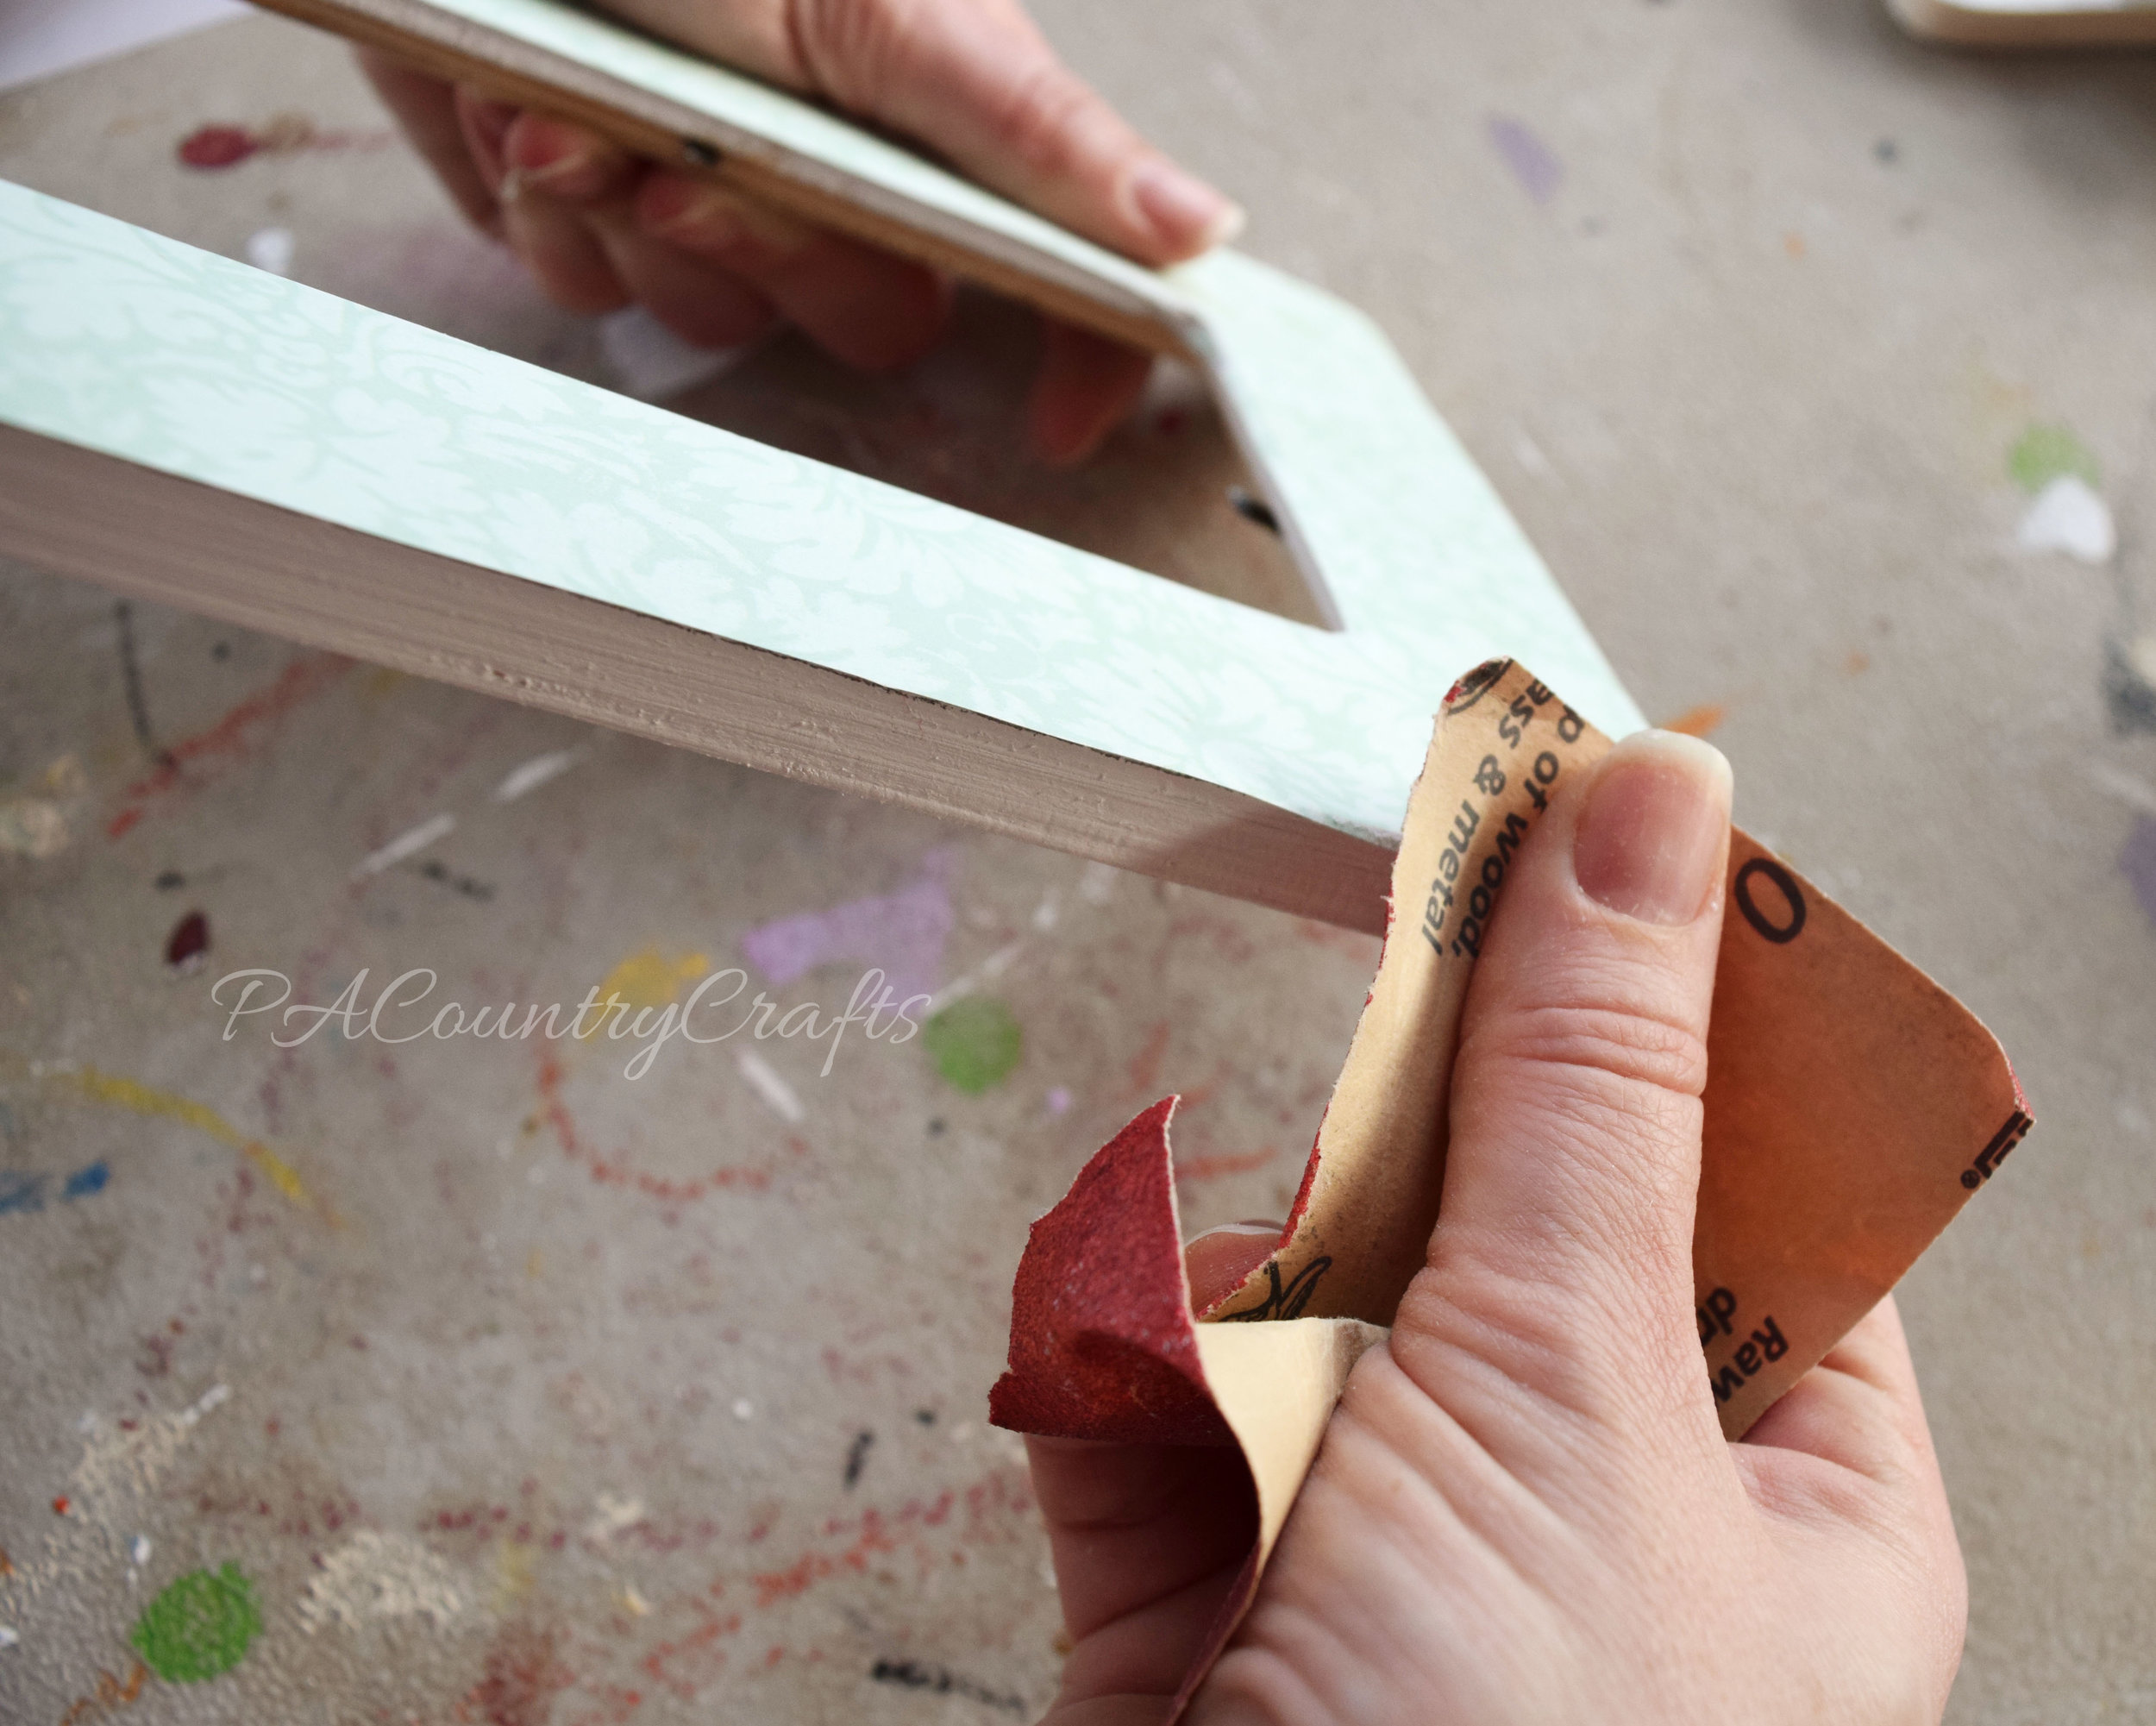 This tip helps you sand extra paper of the edges of mod podge frames for a clean finish.